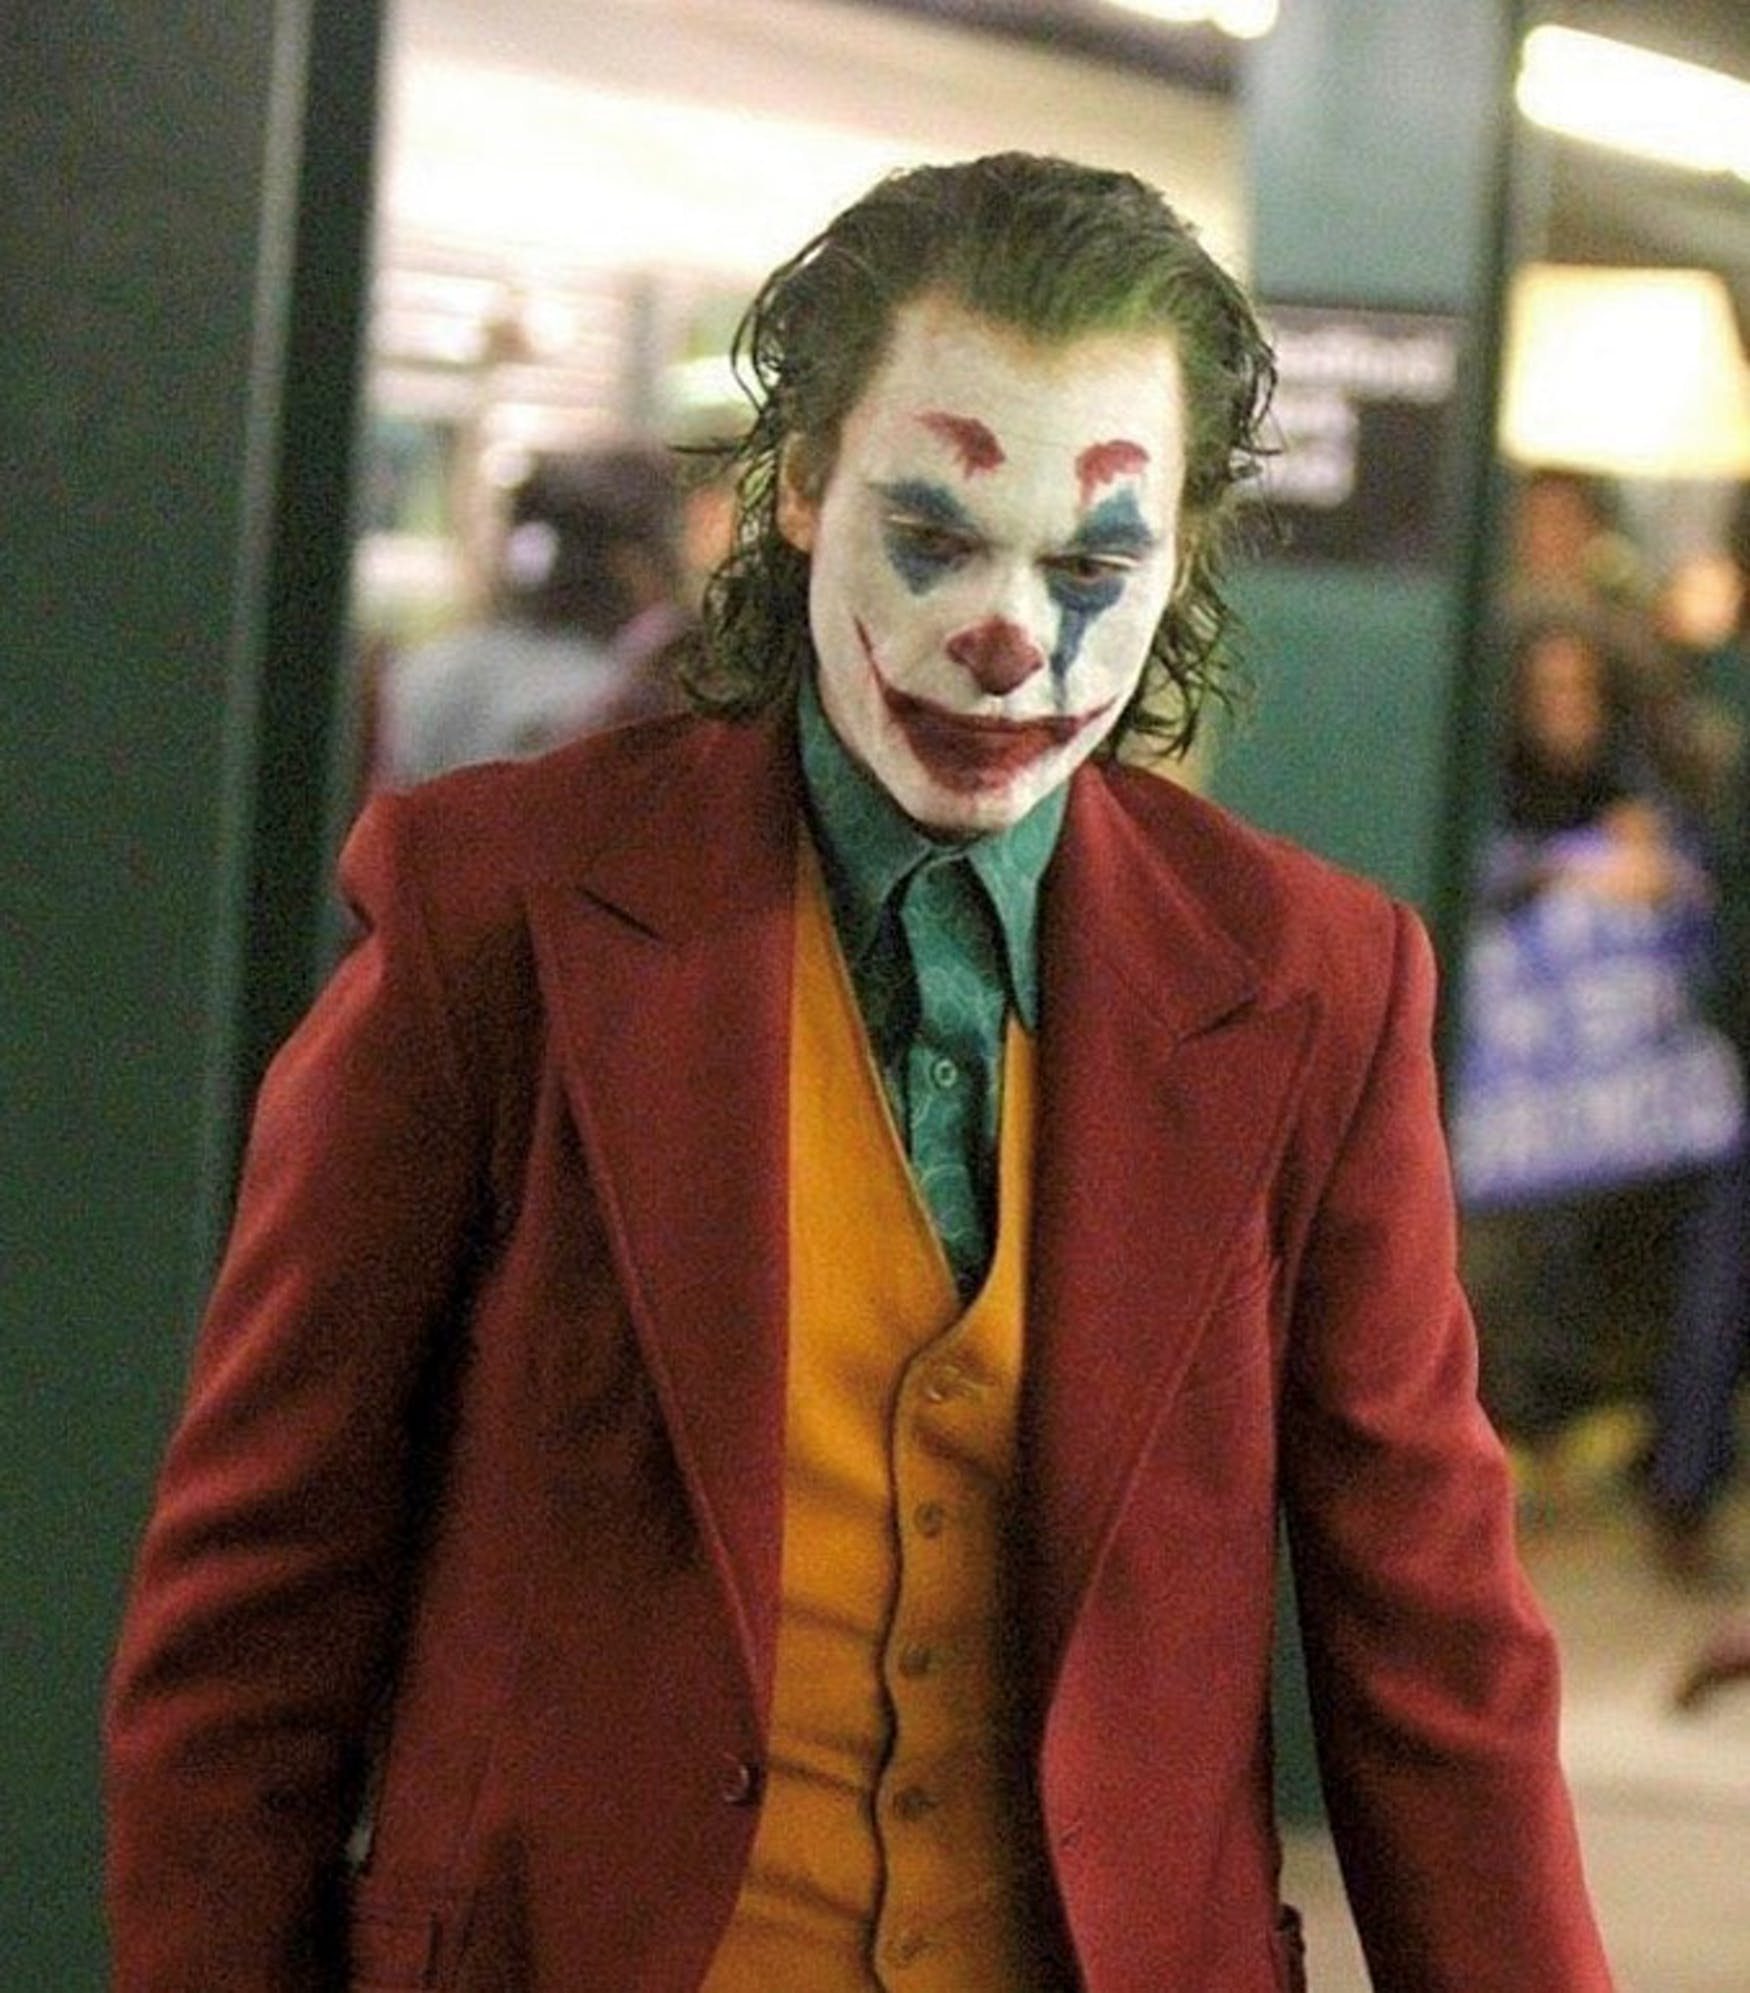 New Joker Film Is No Laughing Matter The Justice Director todd phillips released the first look of his 'joker' movie with a camera test starring joaquin phoenix as the joker! new joker film is no laughing matter